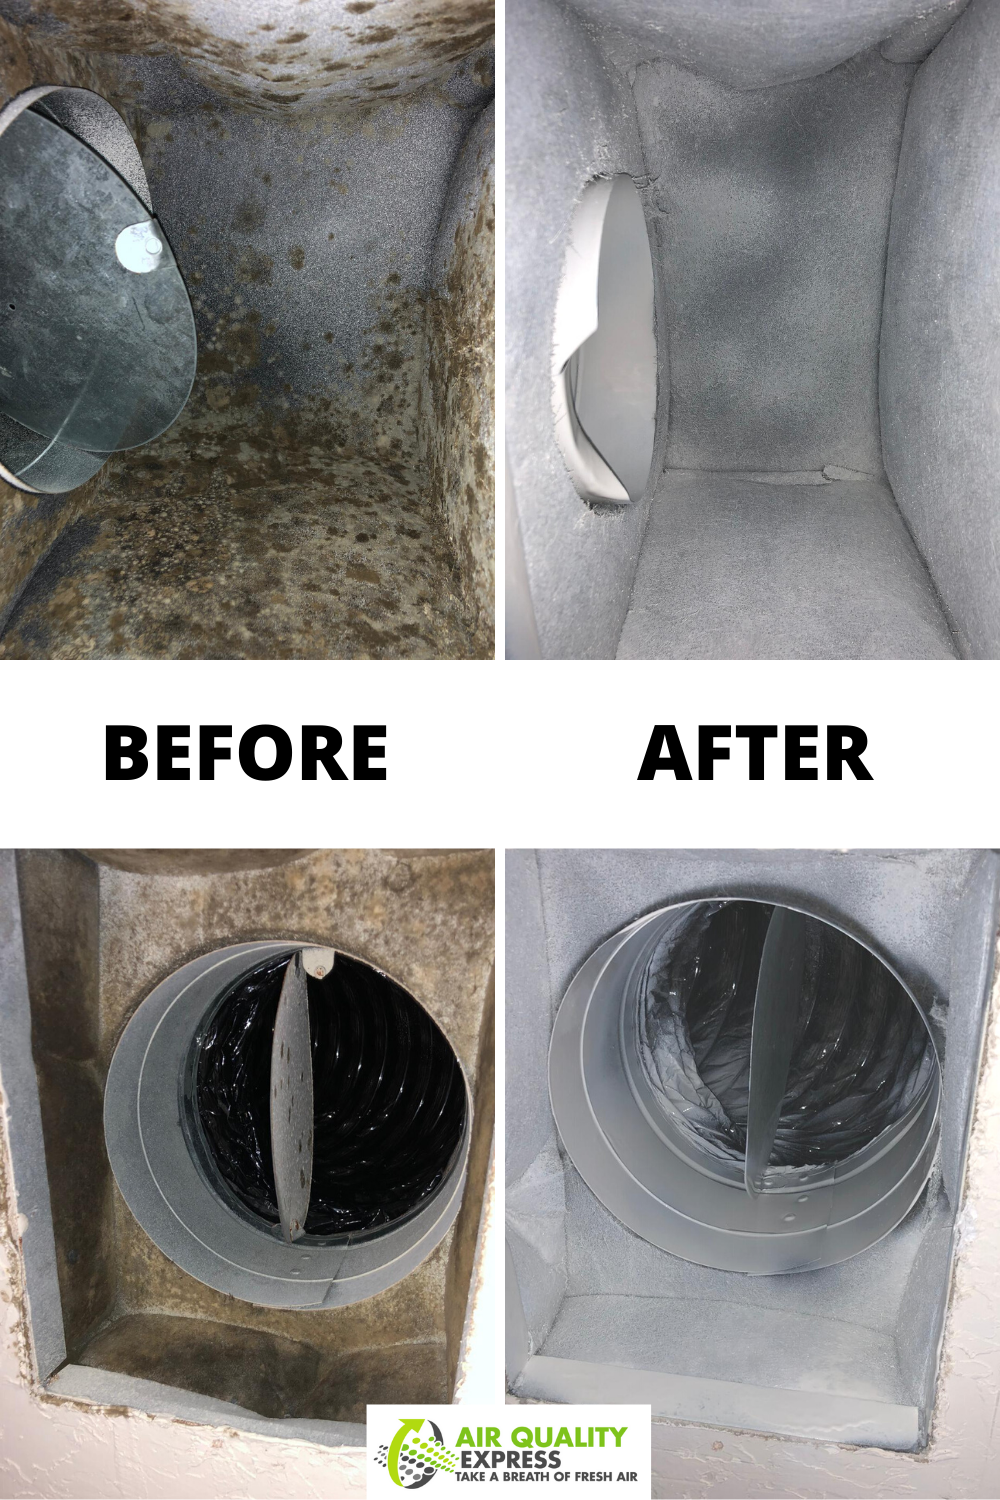 Air Duct Cleaning in 2020 (With images) Air duct, Duct